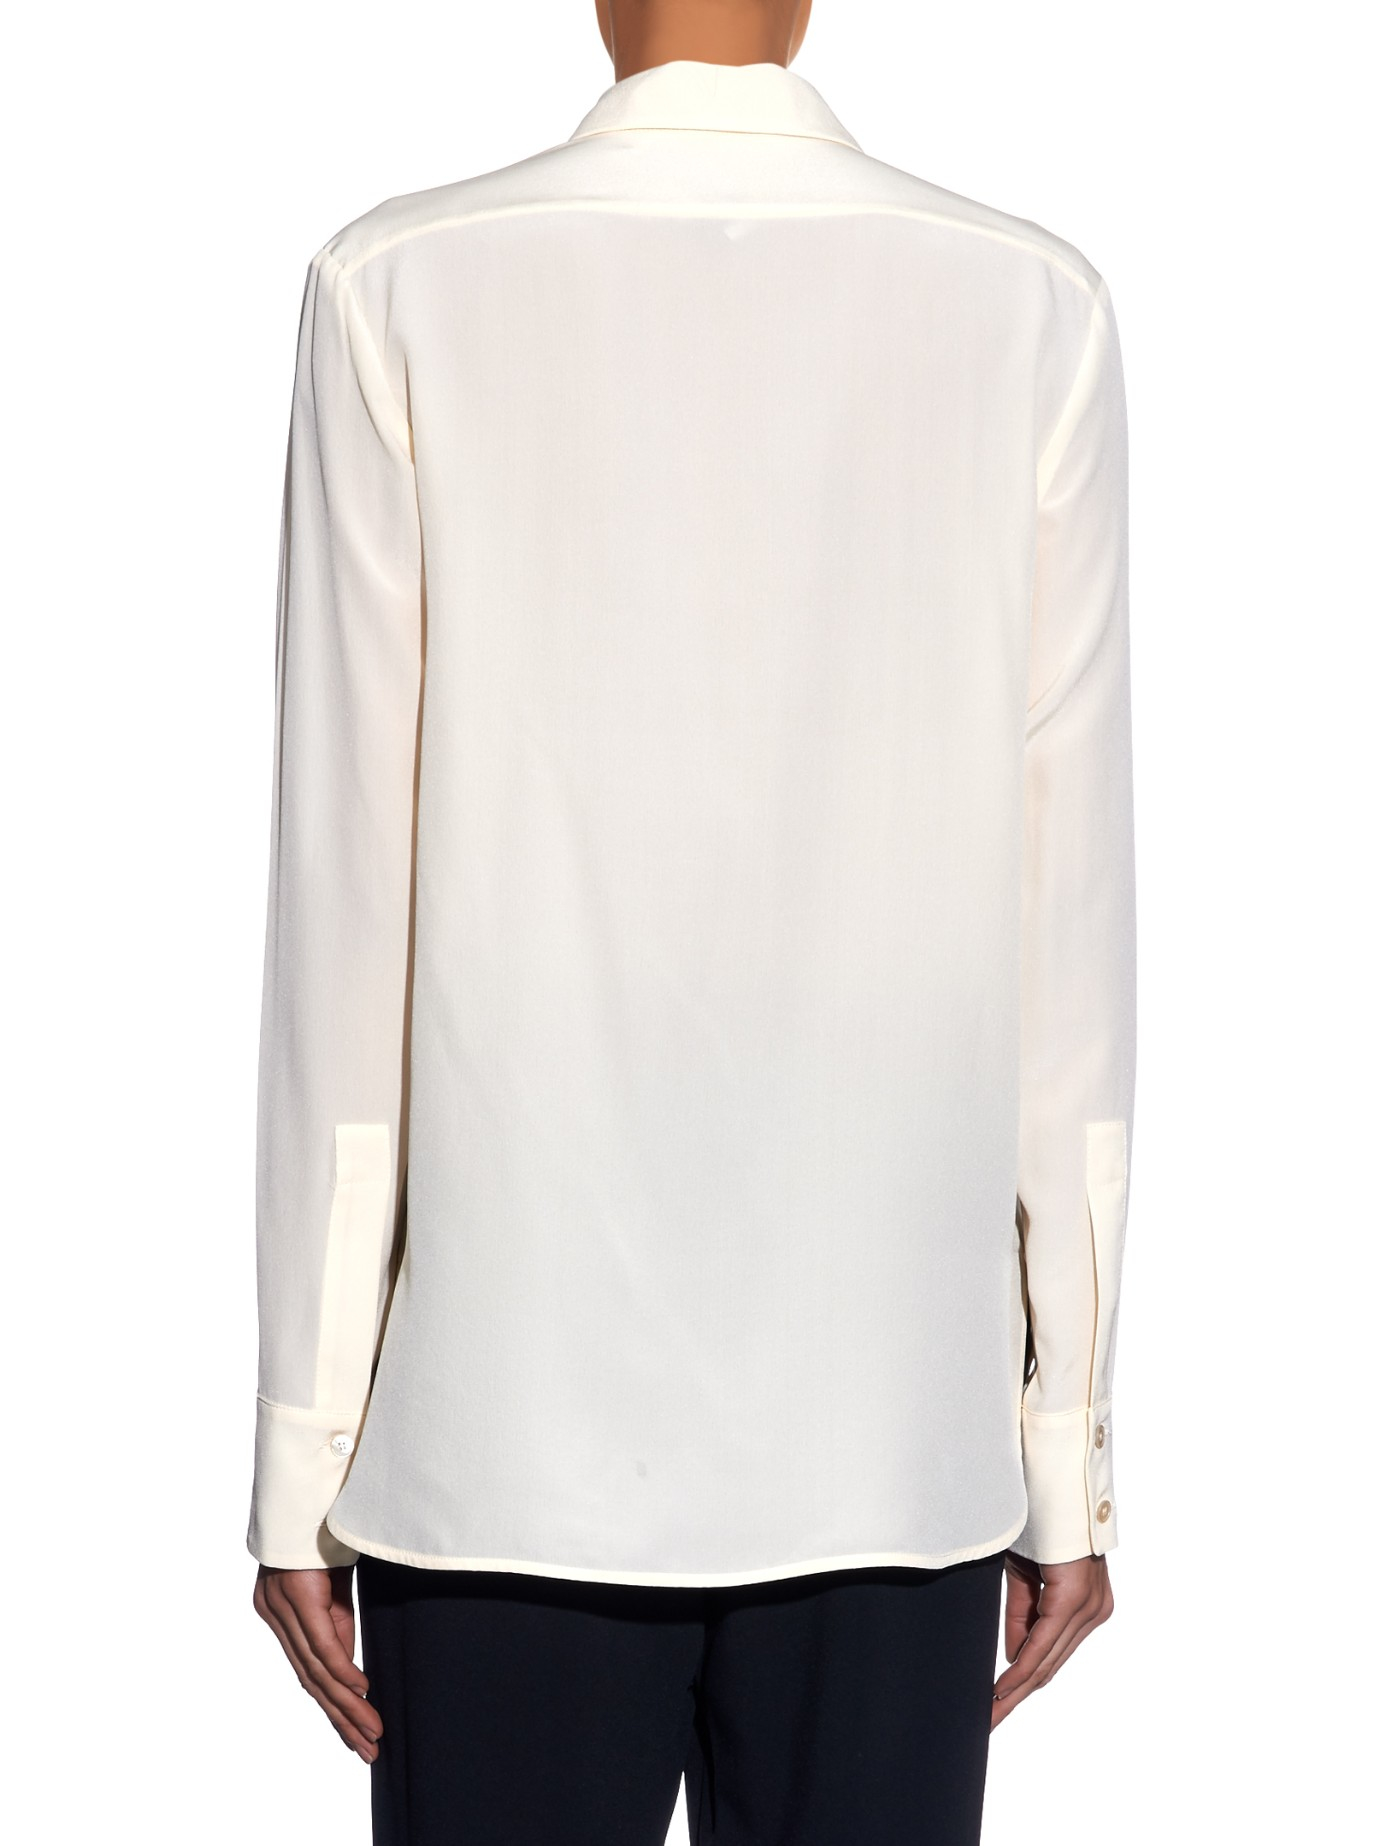 5b516dfe5a81b Lyst - Stella McCartney Arlo Embroidered Silk Blouse in White